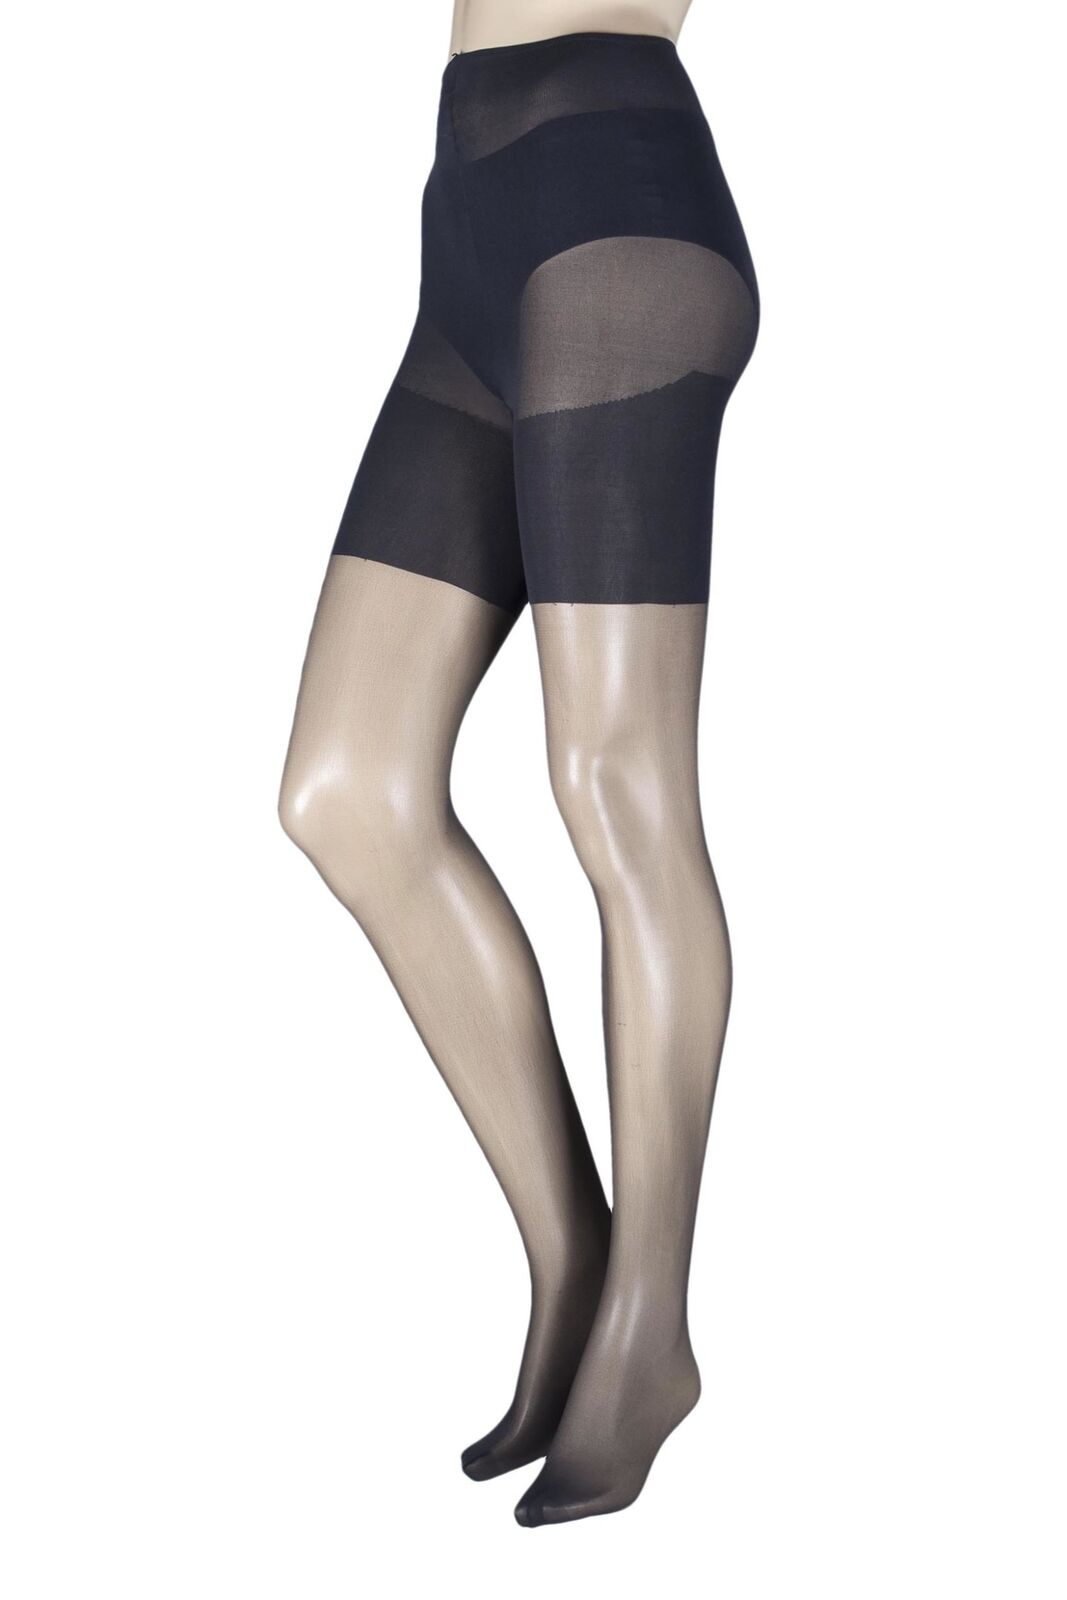 32c1c0aabf24a 20 Denier Luxury Sheer Nylon Xceptionelle Plus Size Tights XL & XXL ...